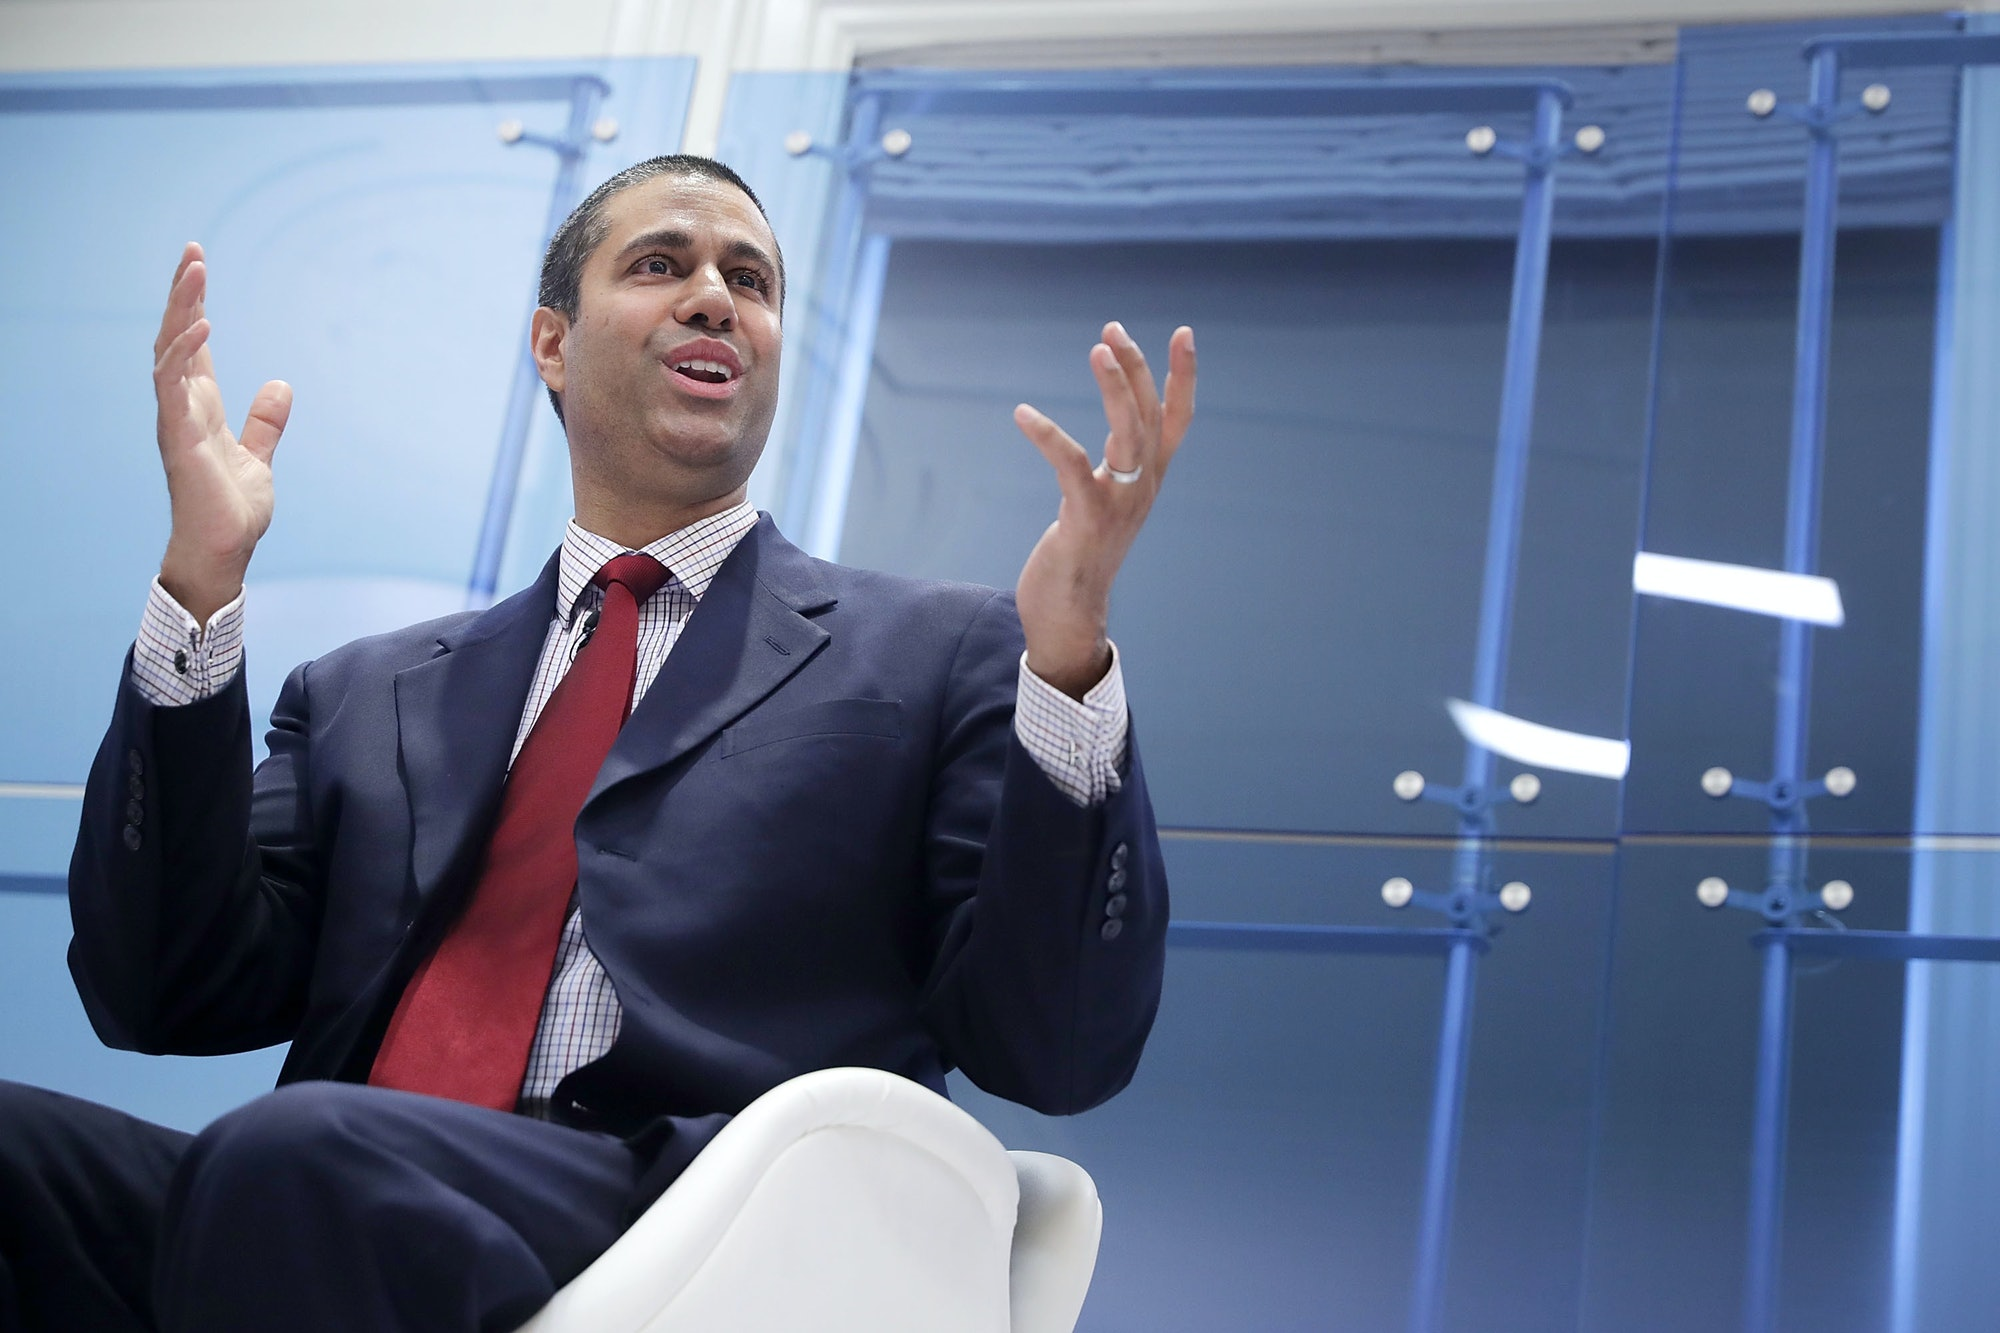 WASHINGTON, DC - MAY 05: Federal Communication Commission Chairman Ajit Pai participates in a discussion about his accomplishments at The American Enterprise Institute for Public Policy Research May 5,2017in Washington, DC. Appointed to the commission by President Barack Obama in 2012, Pai was elevated to the chairmanship of the FCC by U.S. President Donald Trump in January. (Photo by Chip Somodevilla/Getty Images)